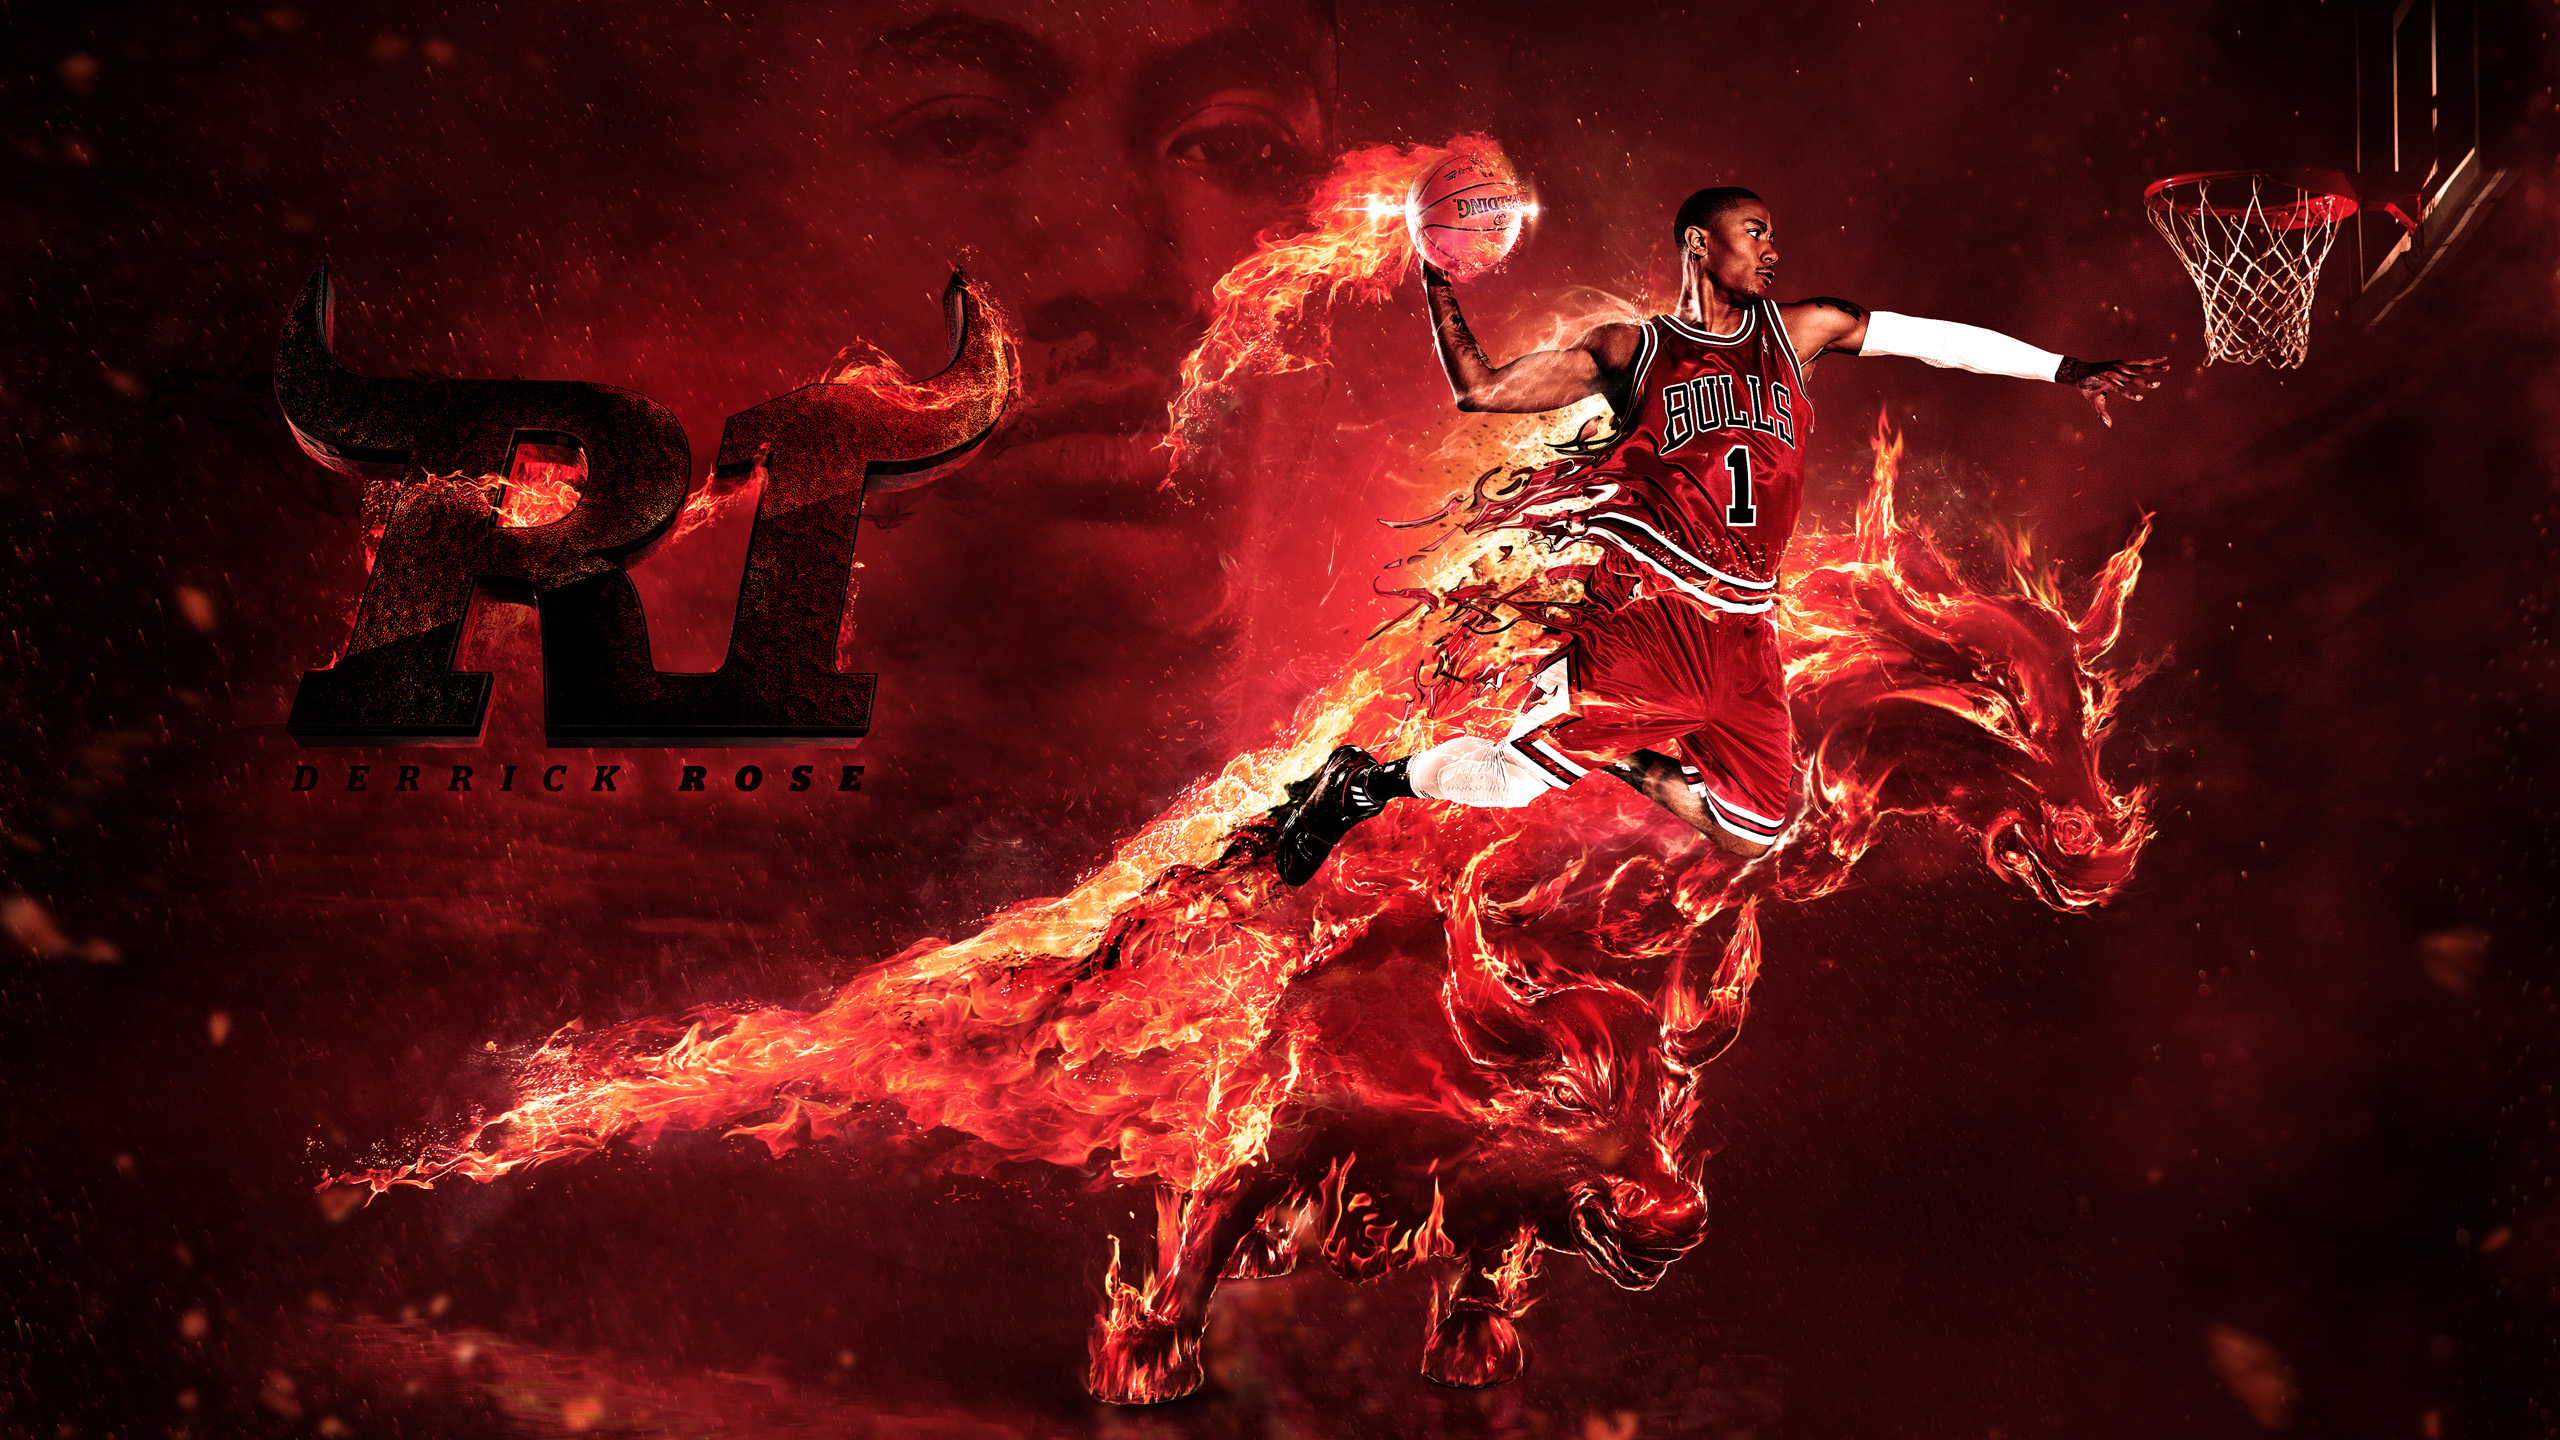 39 Derrick Rose Wallpaper HD Quality Derrick Rose Images 2560x1440